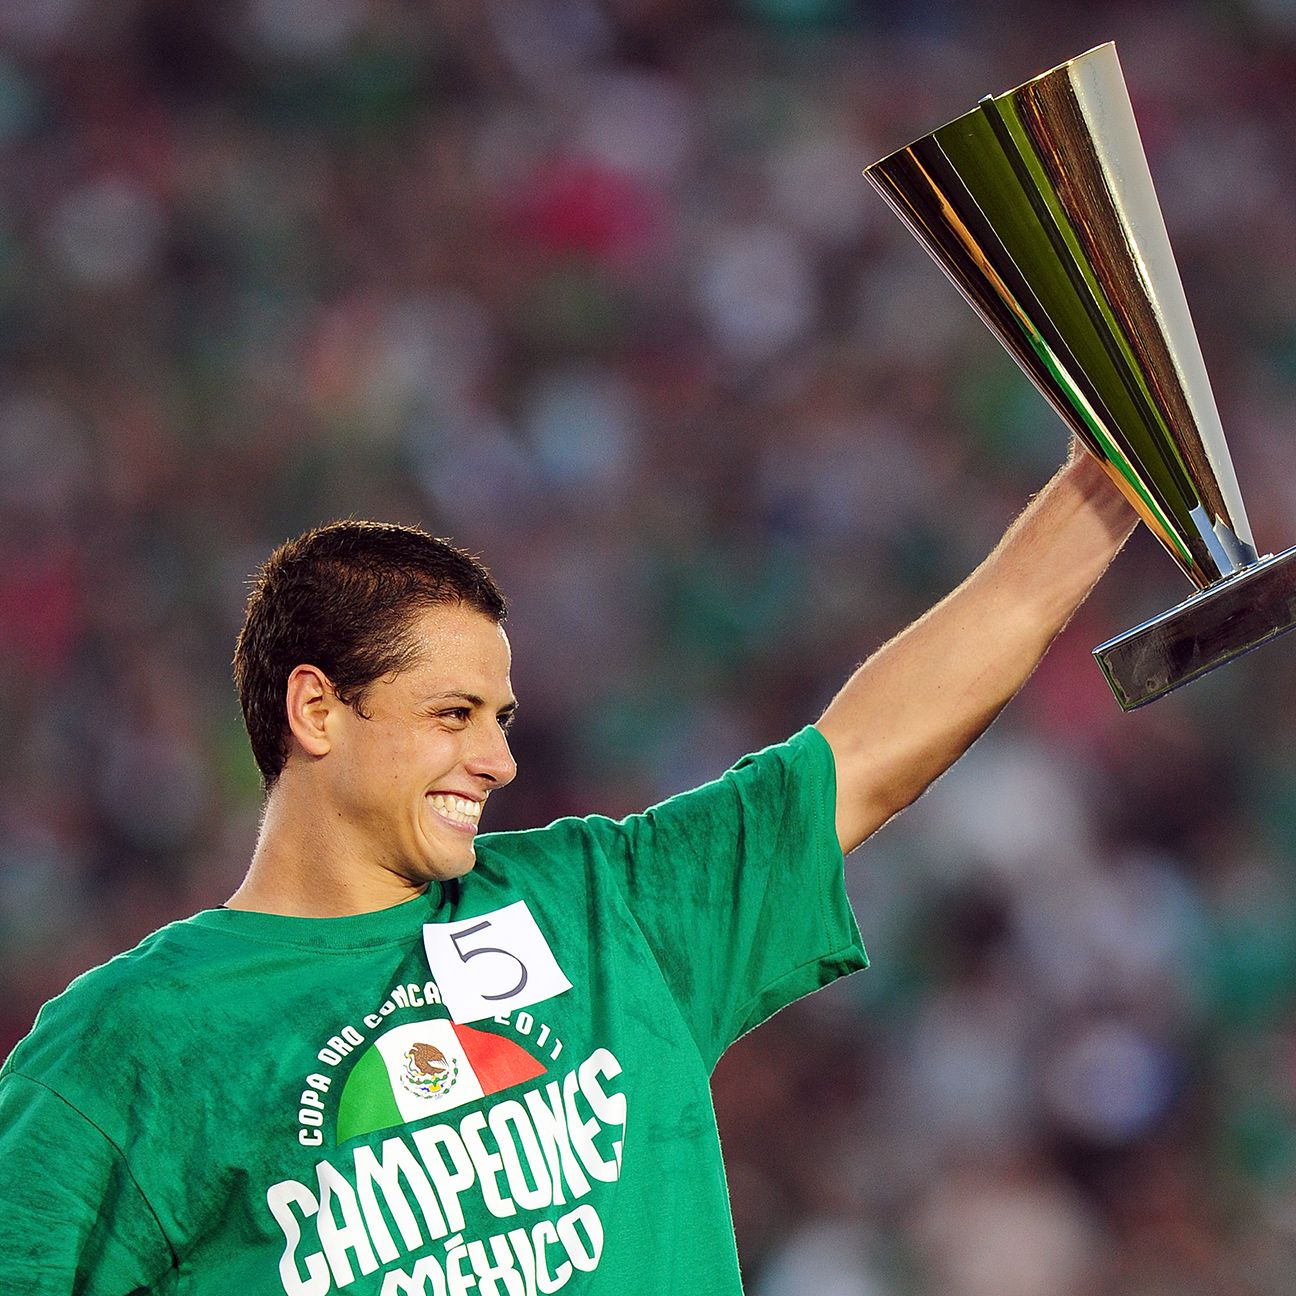 Mexico fans can expect to see Chicharito Hernandez at next summer's Gold Cup, but probably not at the 2015 Copa America in Chile.